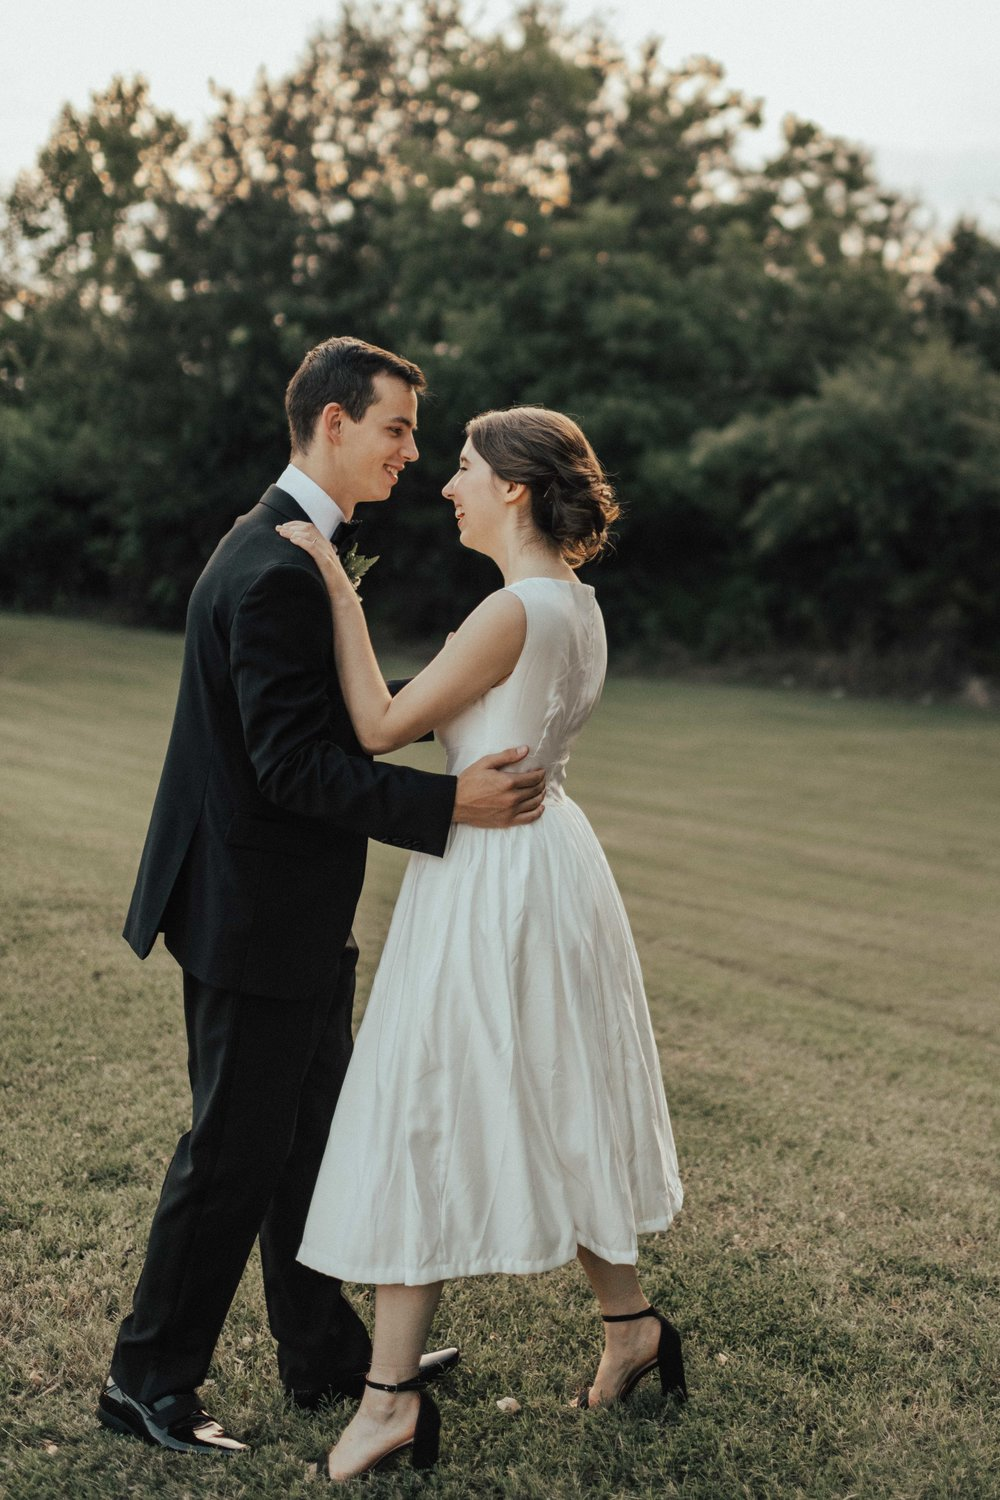 An absolute favorite moment of the day!  Autumn and Justin opted to have their first dance all by themselves outside and sunset… Justin simply pulled out his phone, put on their song, and they started dancing around in the grass.   I swear there were so many moments from this day that made me tear up.